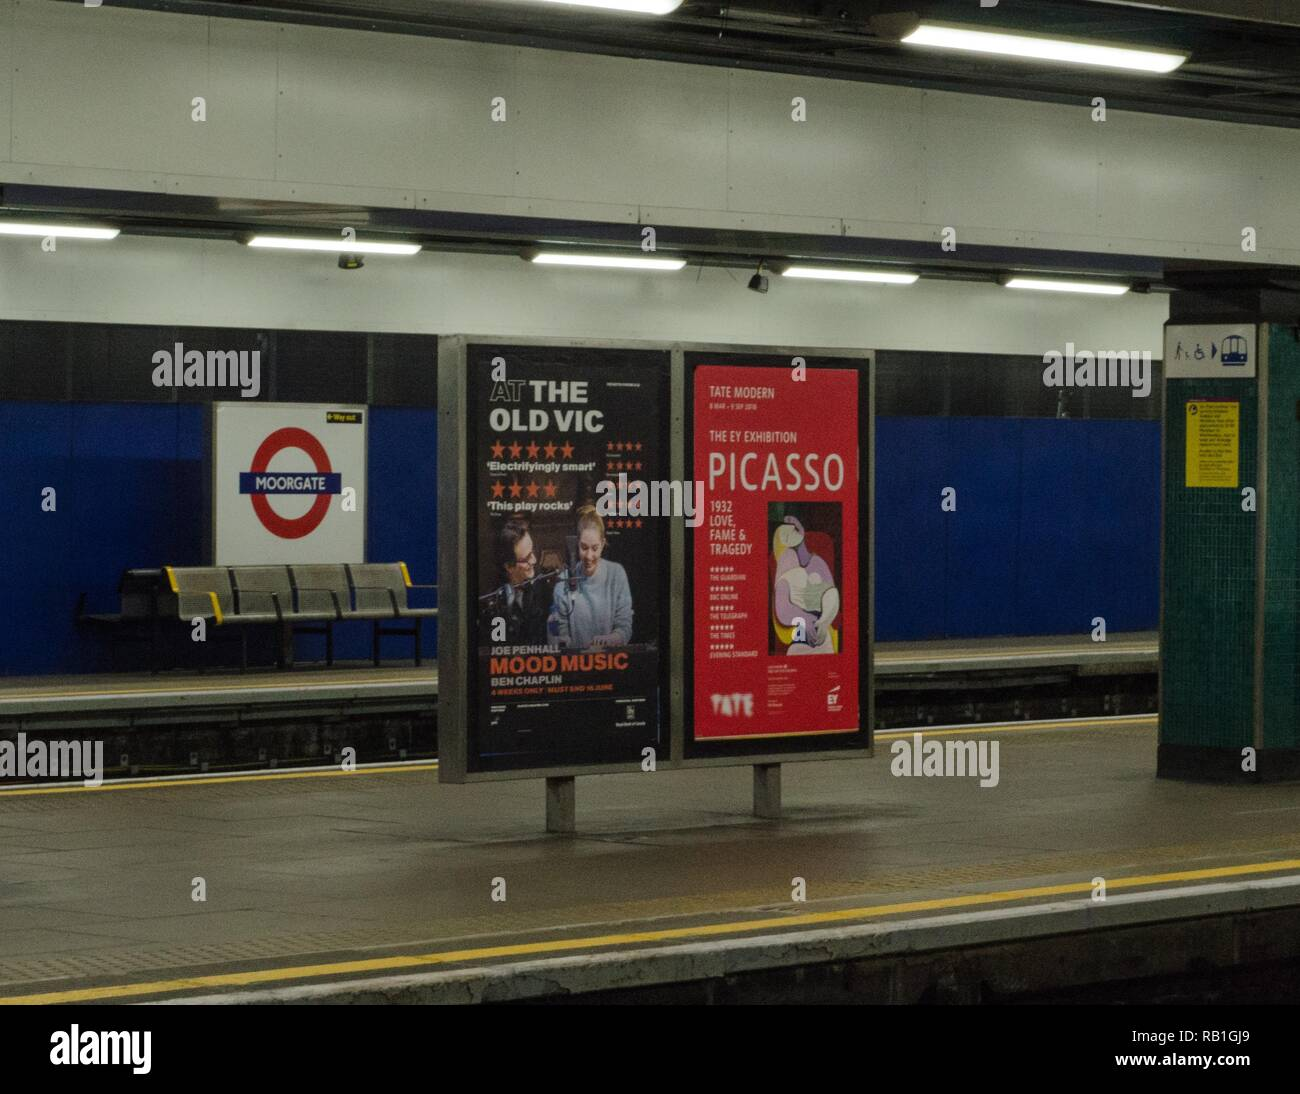 Advertising at the Moorgate Tube Station, London - Stock Image